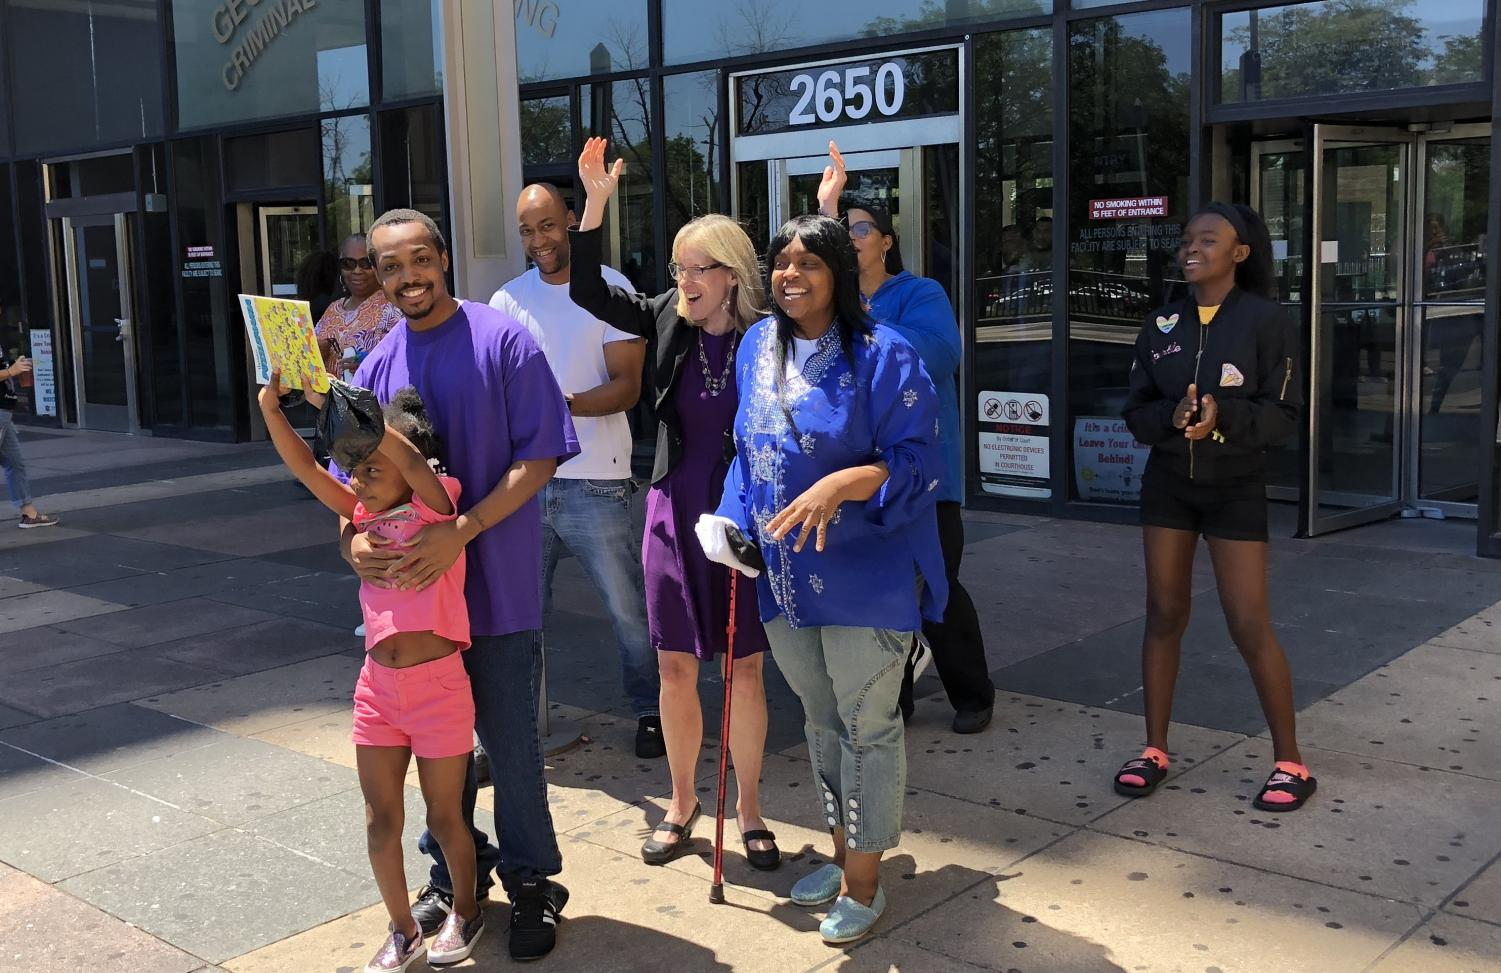 Marcel Brown (far left) reunites with his family after 10 years in jail. The state overturned Brown's previous murder charges on July 18 with help from the Center on Wrongful Convictions.